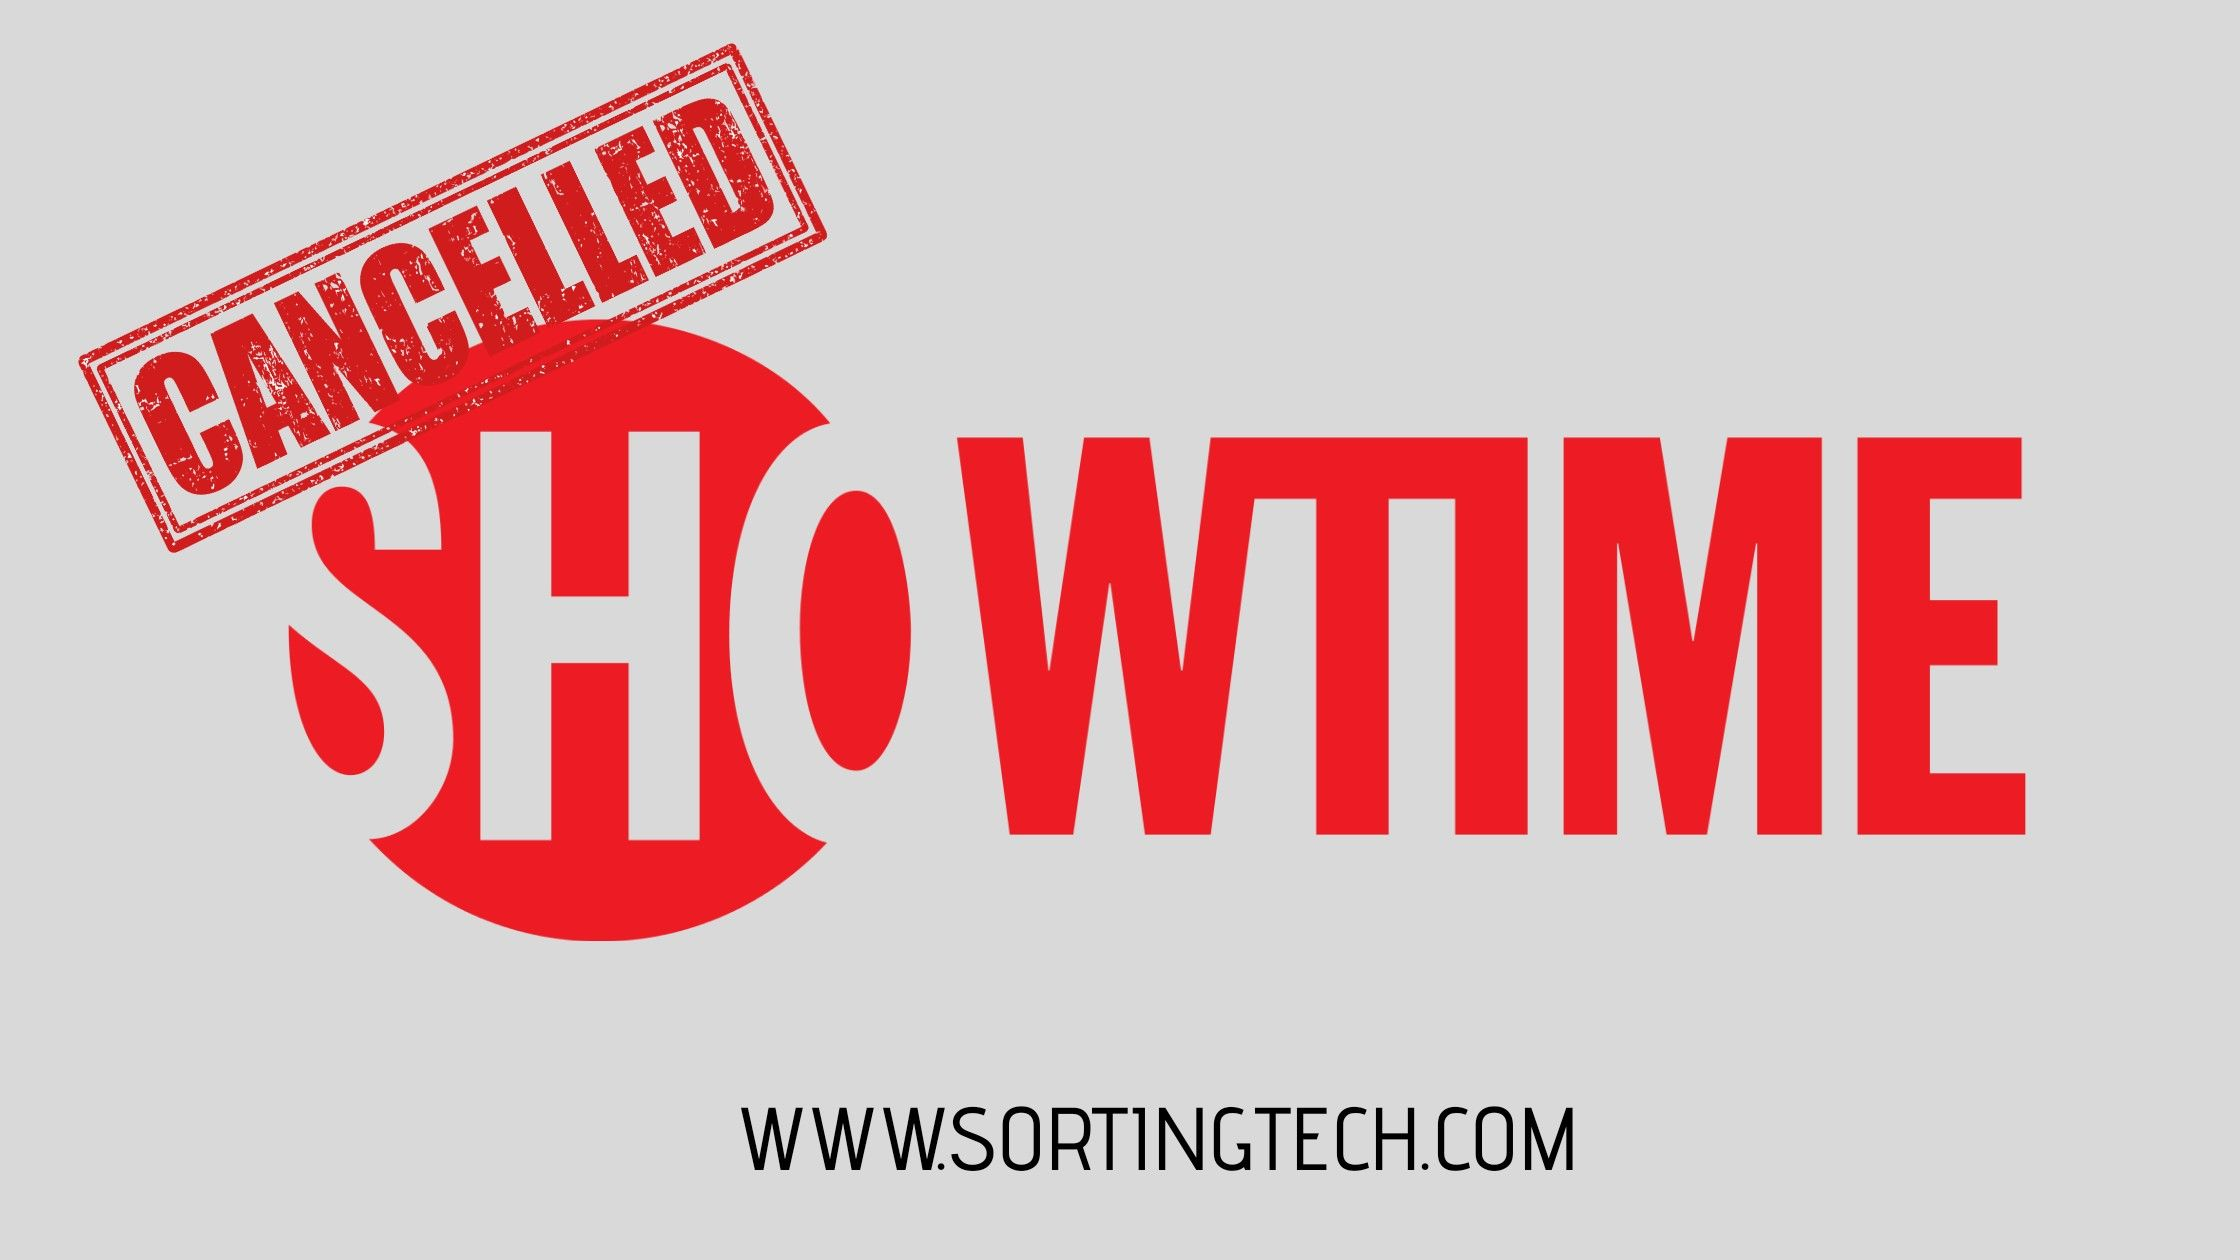 How To Cancel My Showtime Subscription Showtime Cancel Subscription Television Network